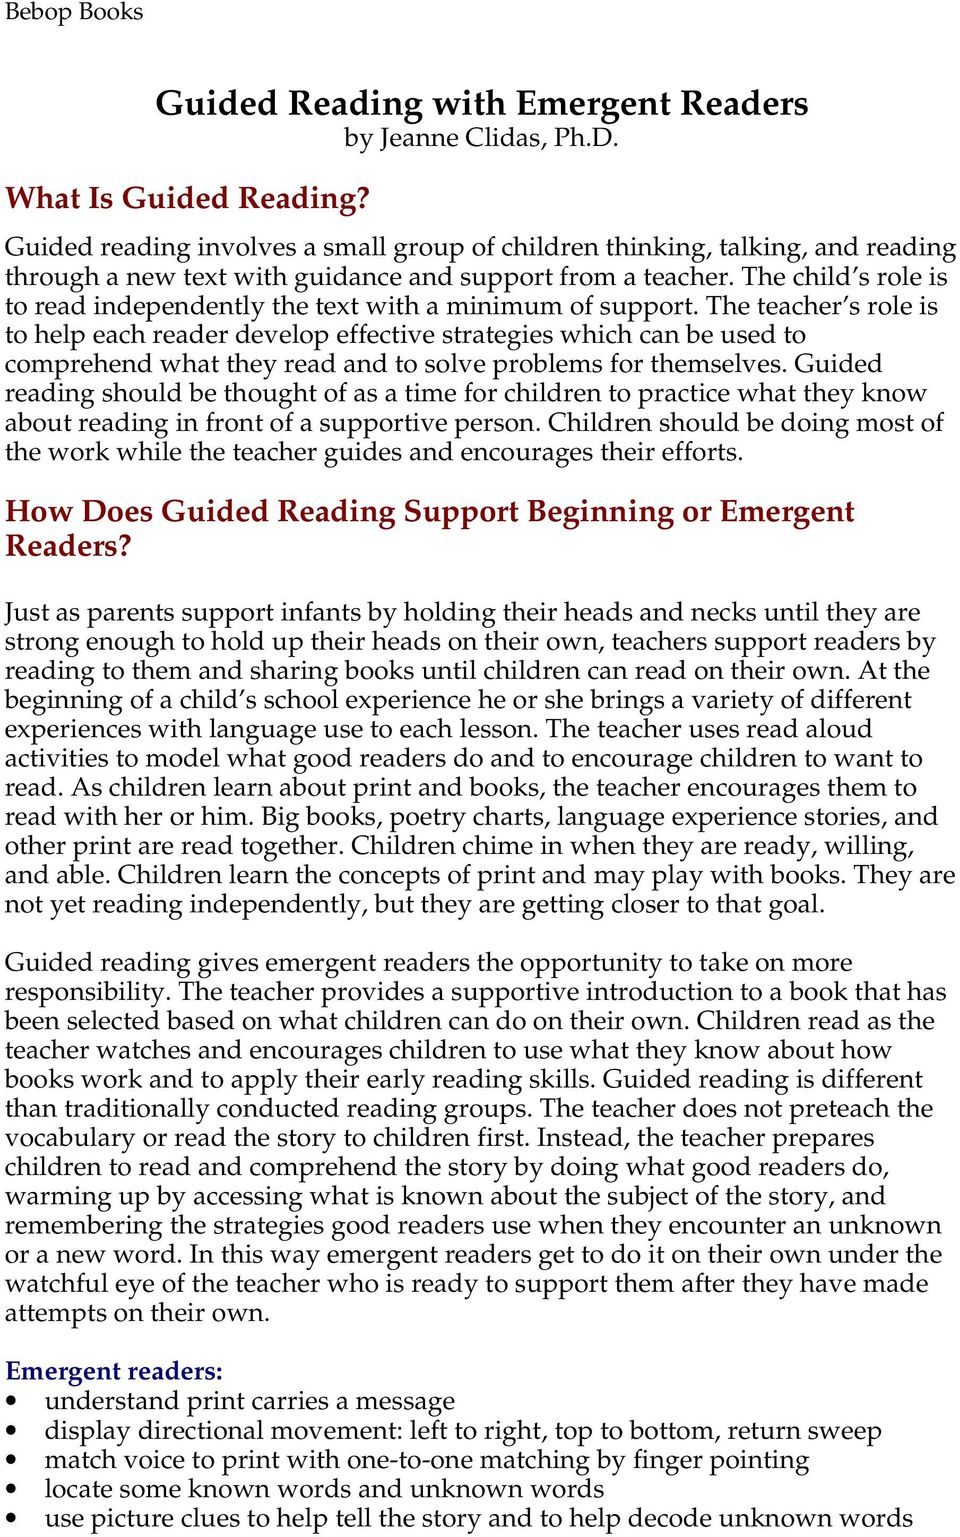 The child s role is to read independently the text with a minimum of support.